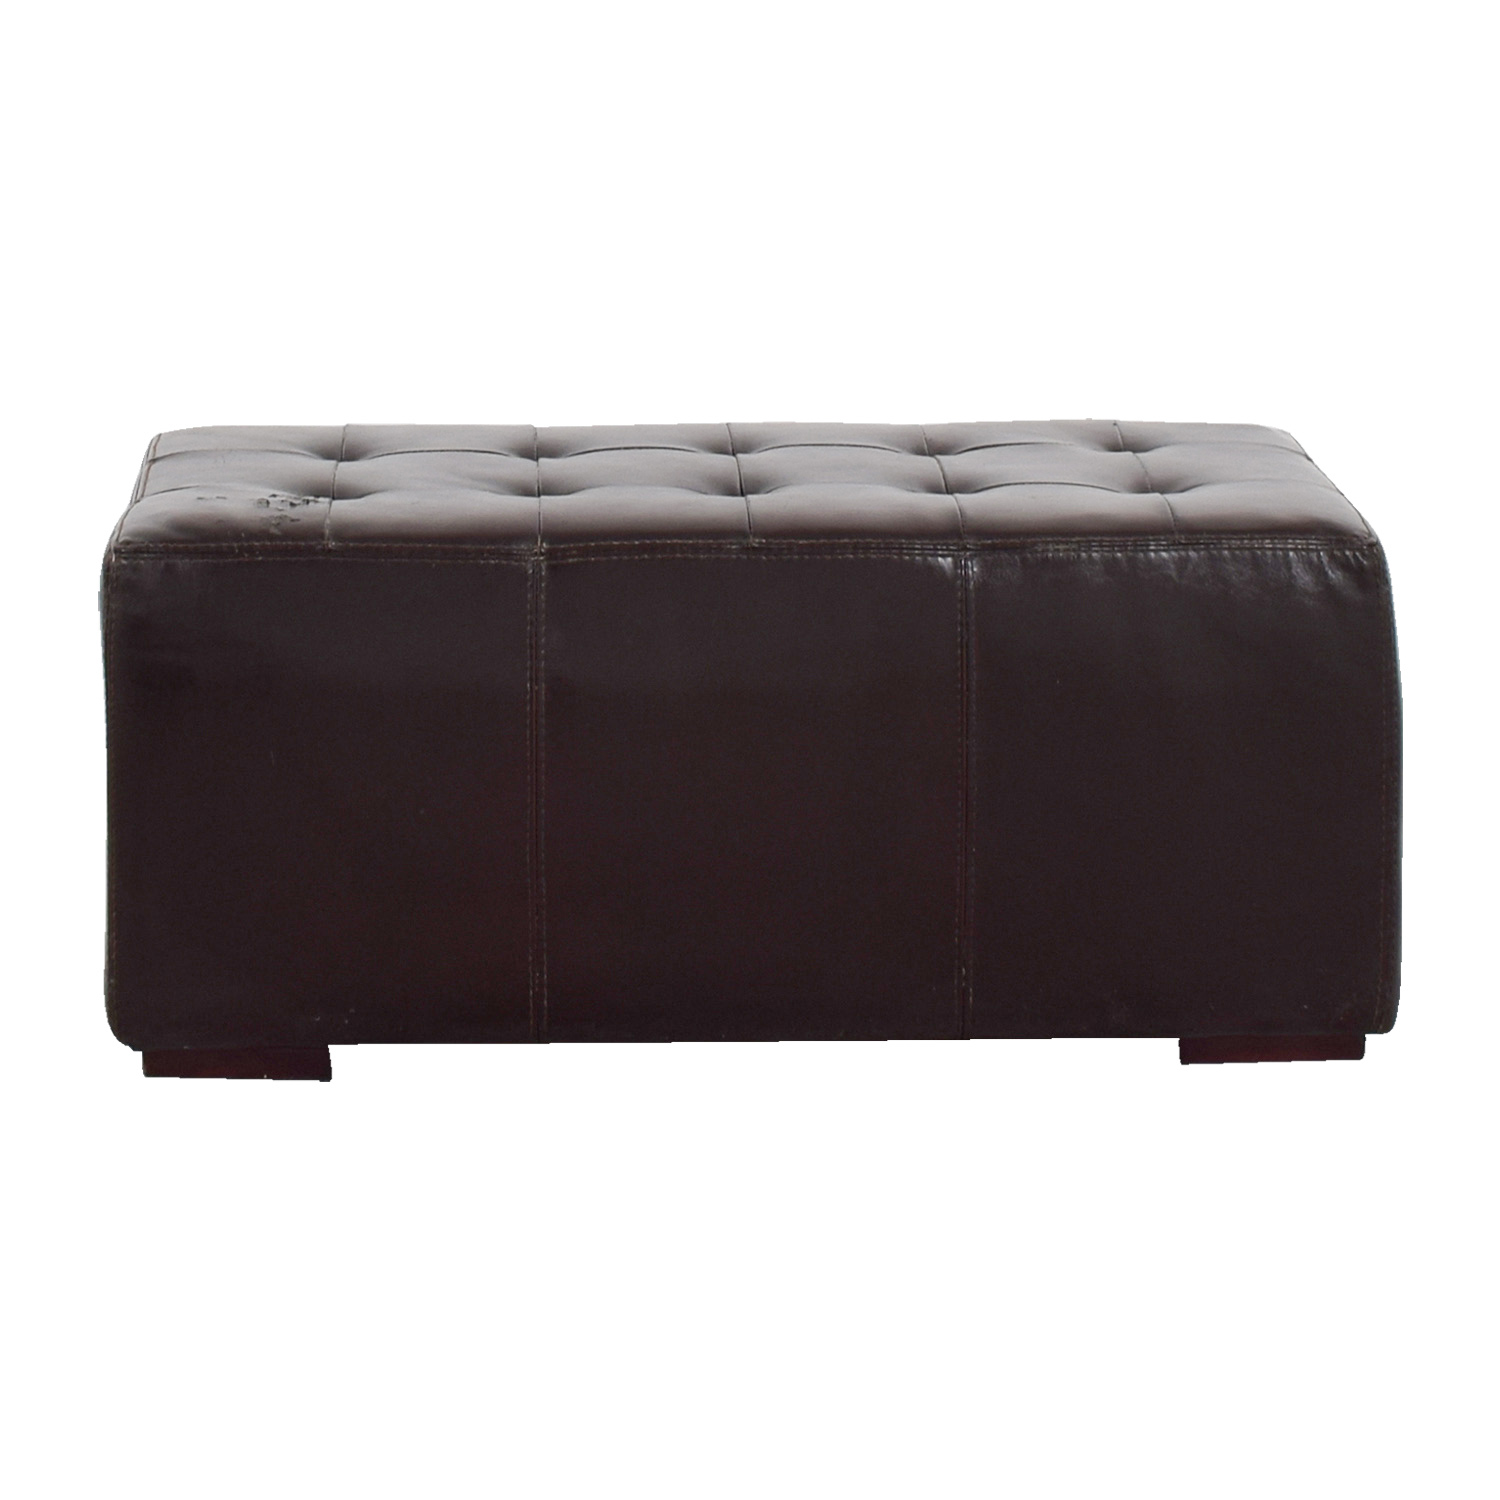 collections daybeds crave emfurn free brown benches bench acrylic tov shipping leather